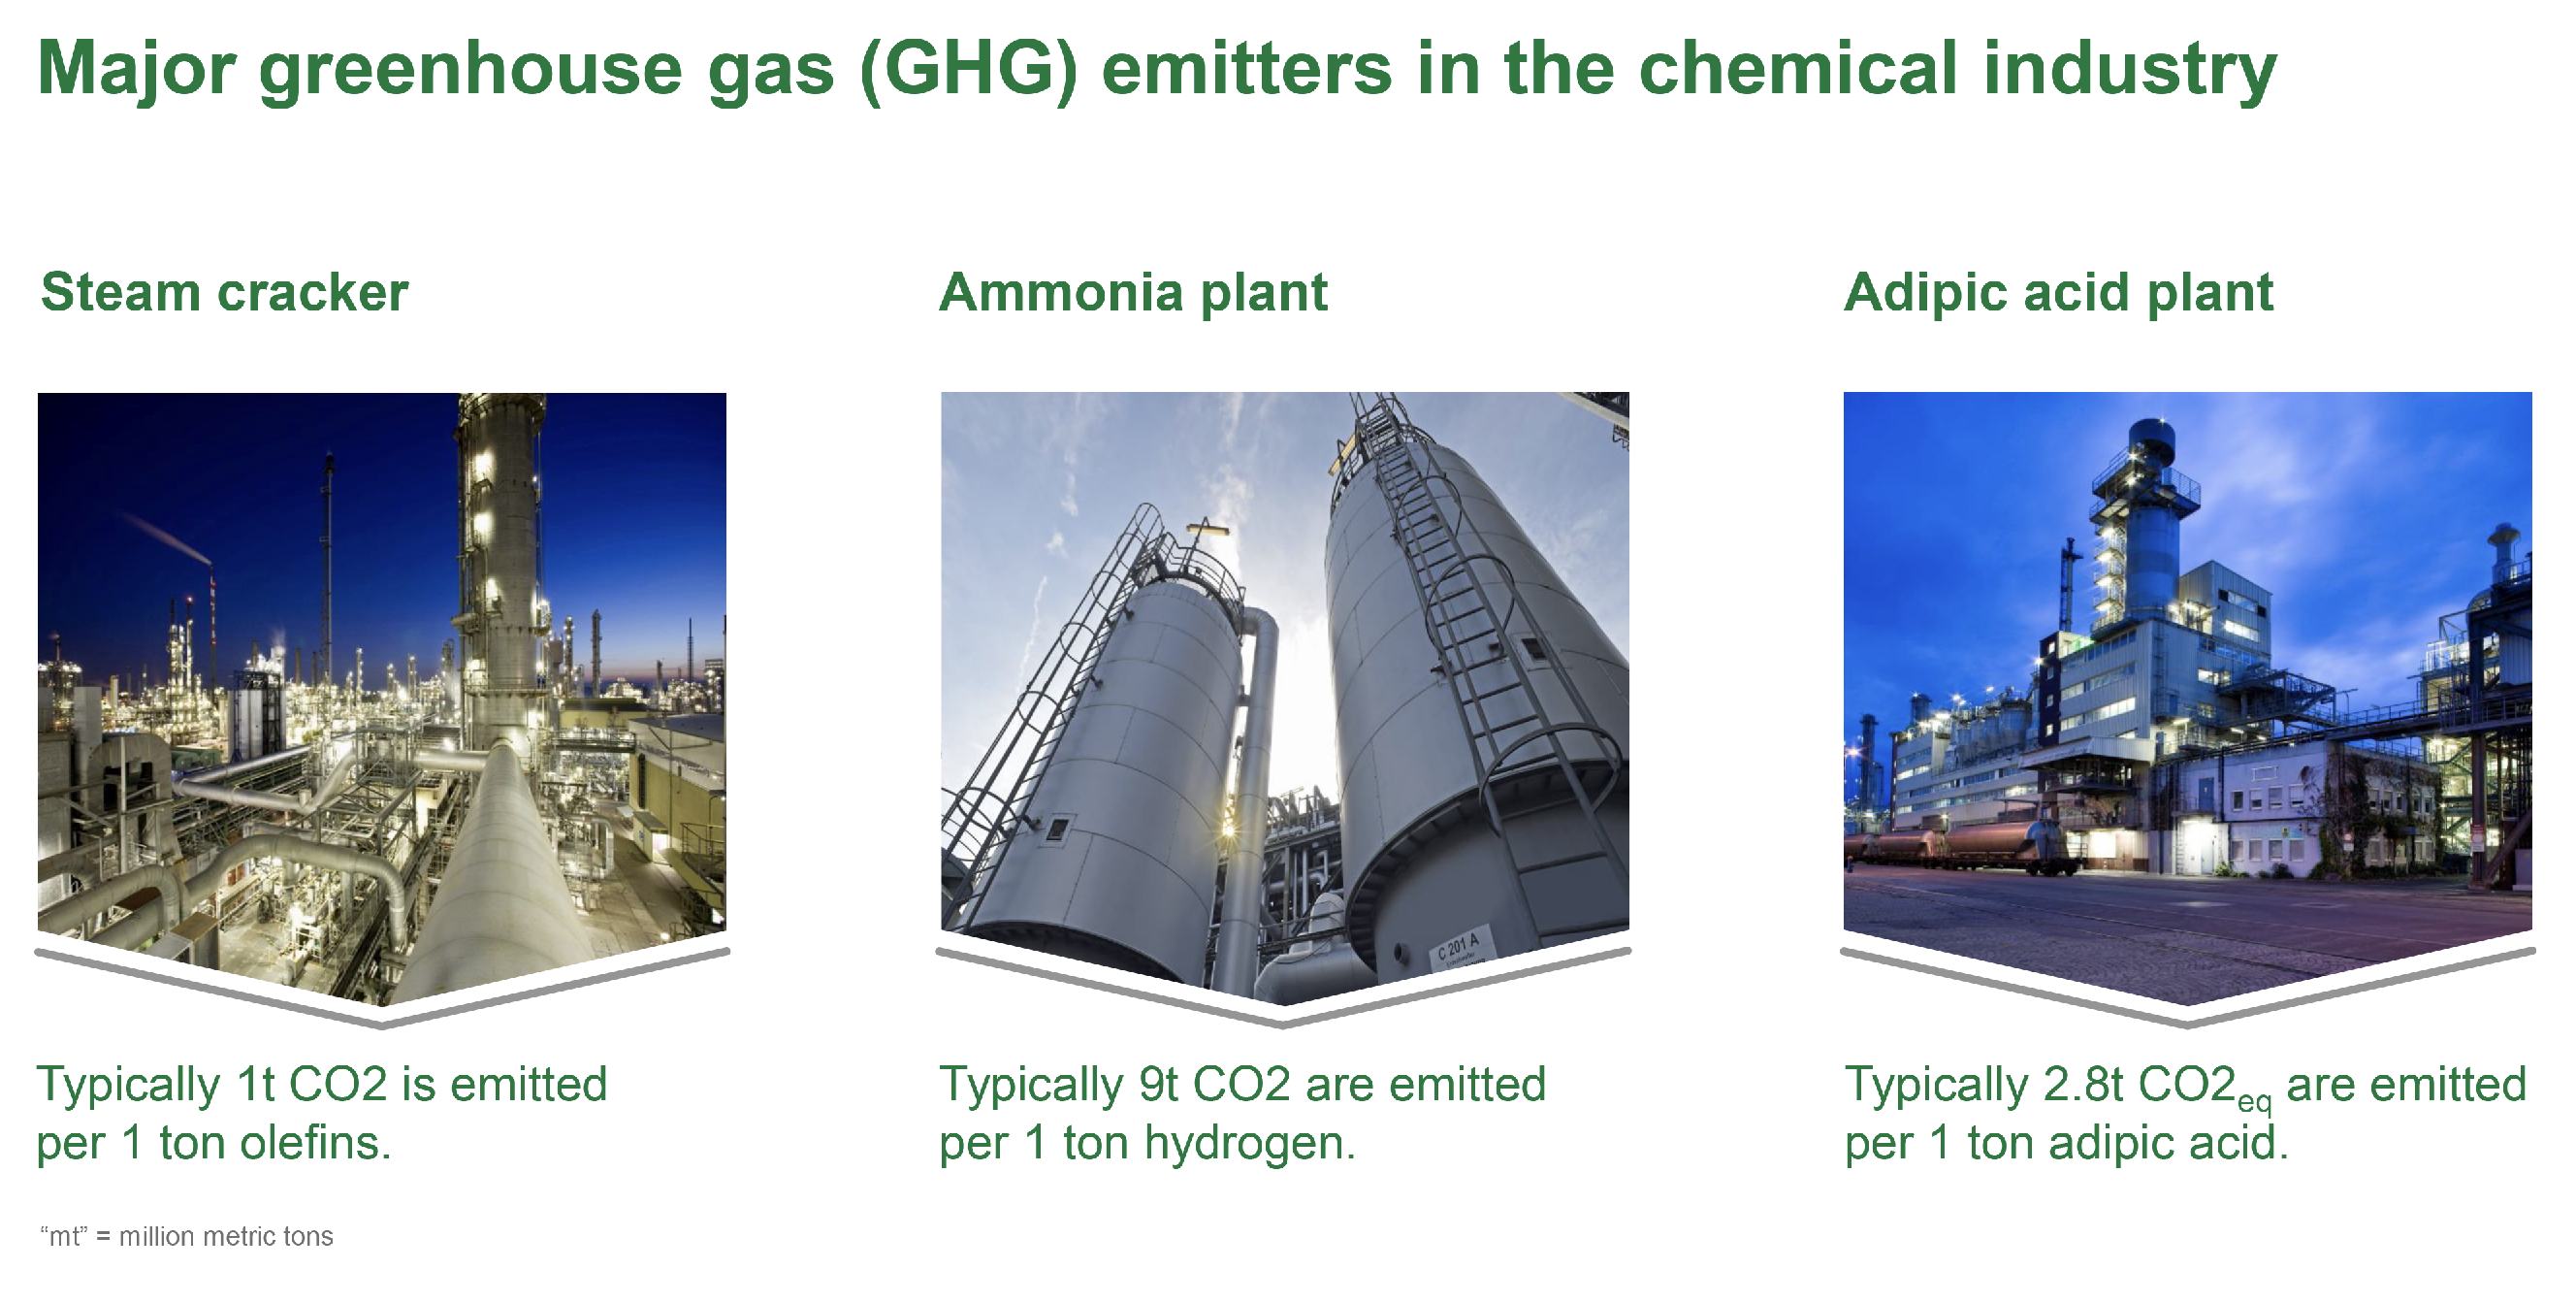 Three of the most carbon-intensive industrial chemical processes